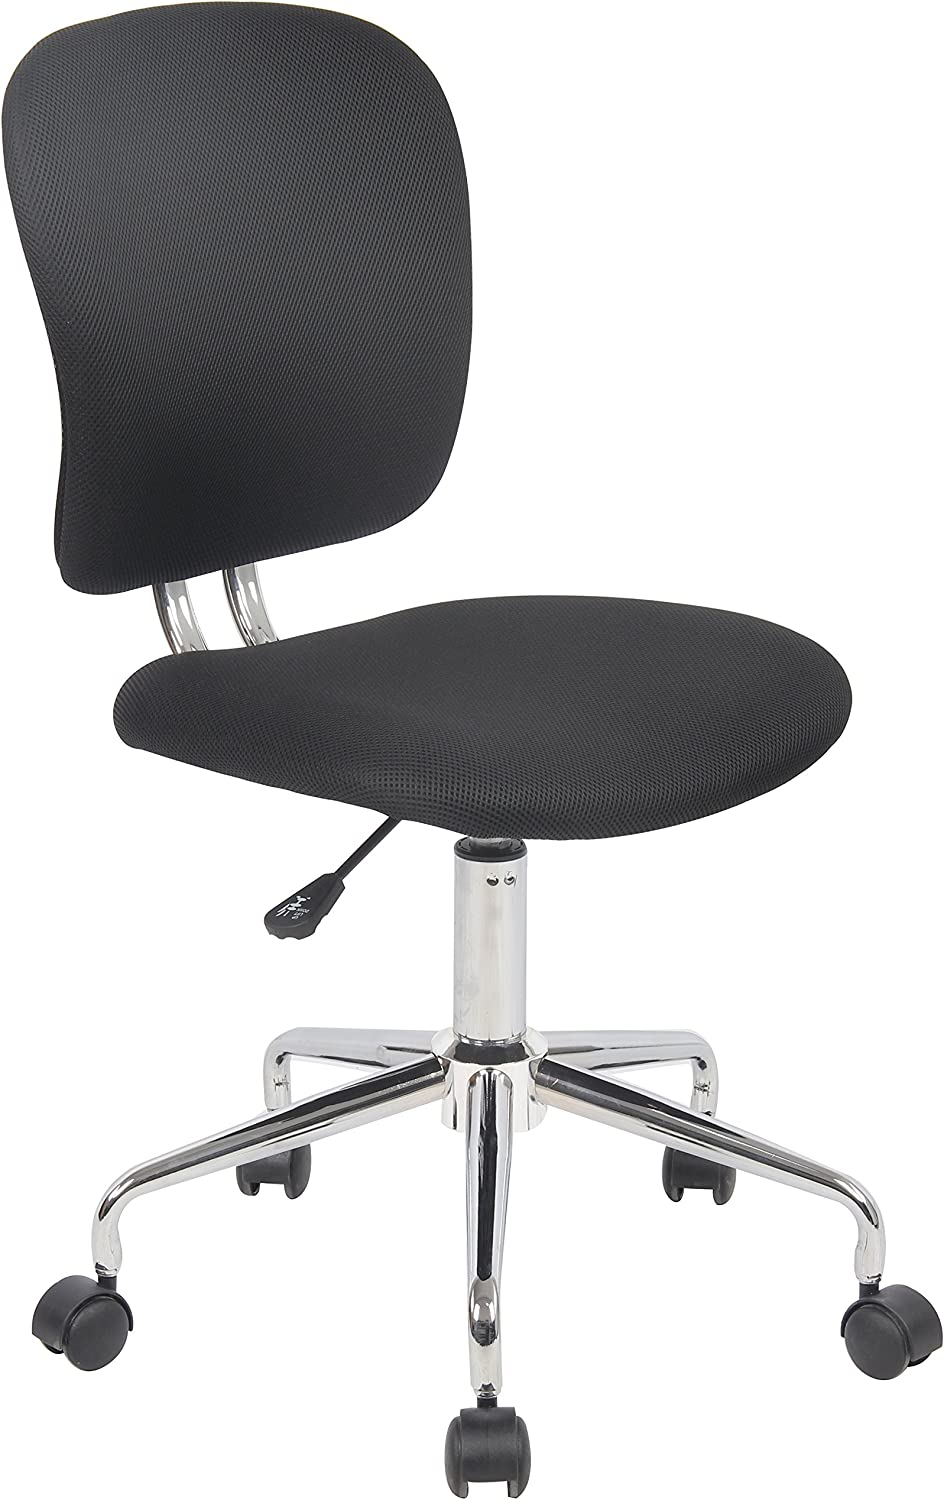 Porthos Home GKC012A BLK Grace Adjustable Office Chair Black